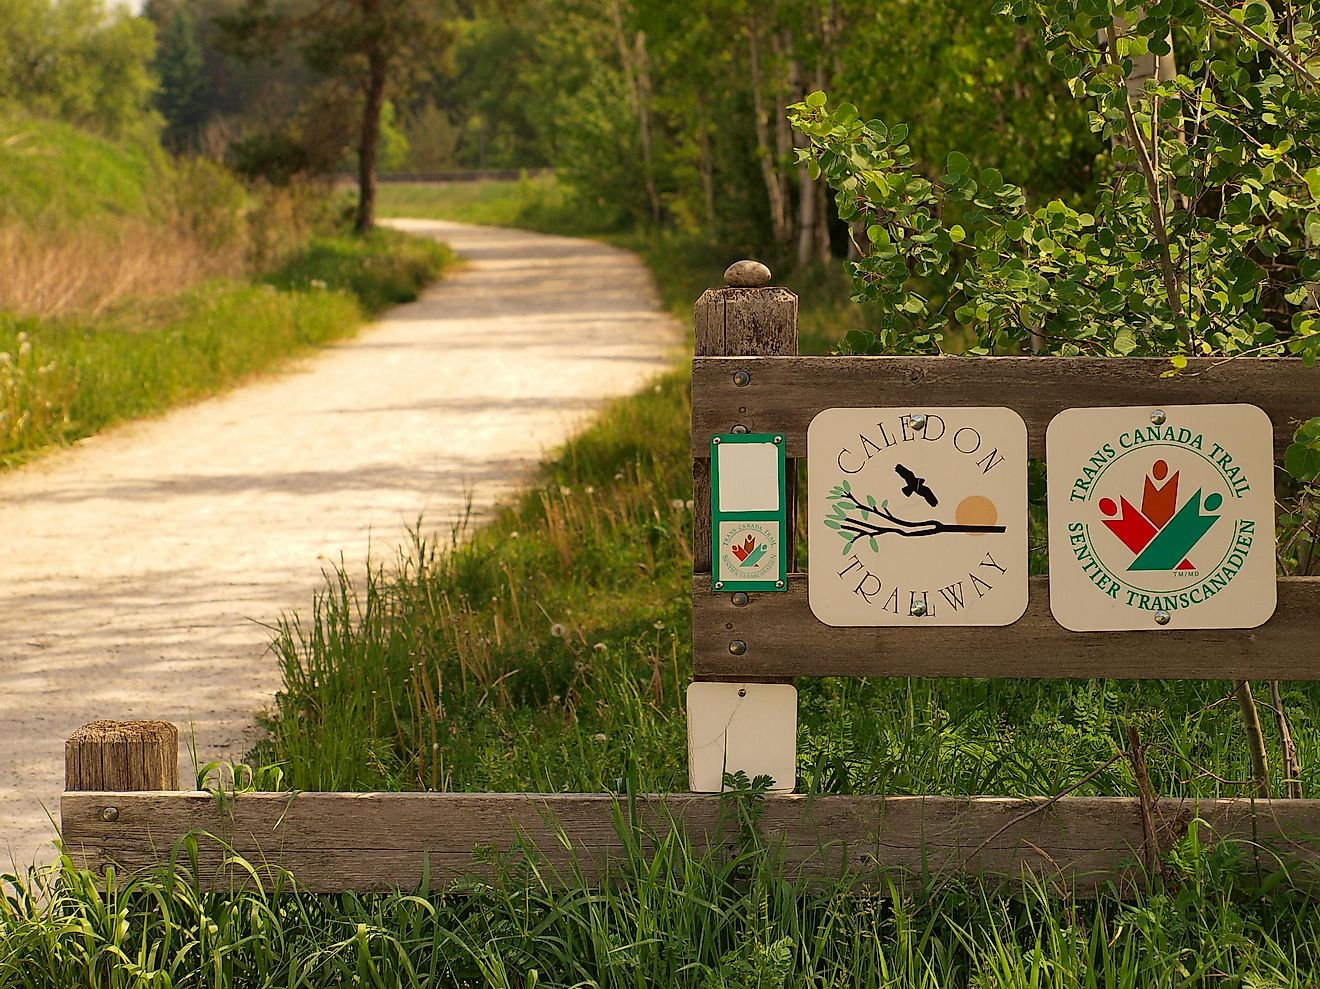 The Trans Canada Trail, the longest hiking trail in the world.